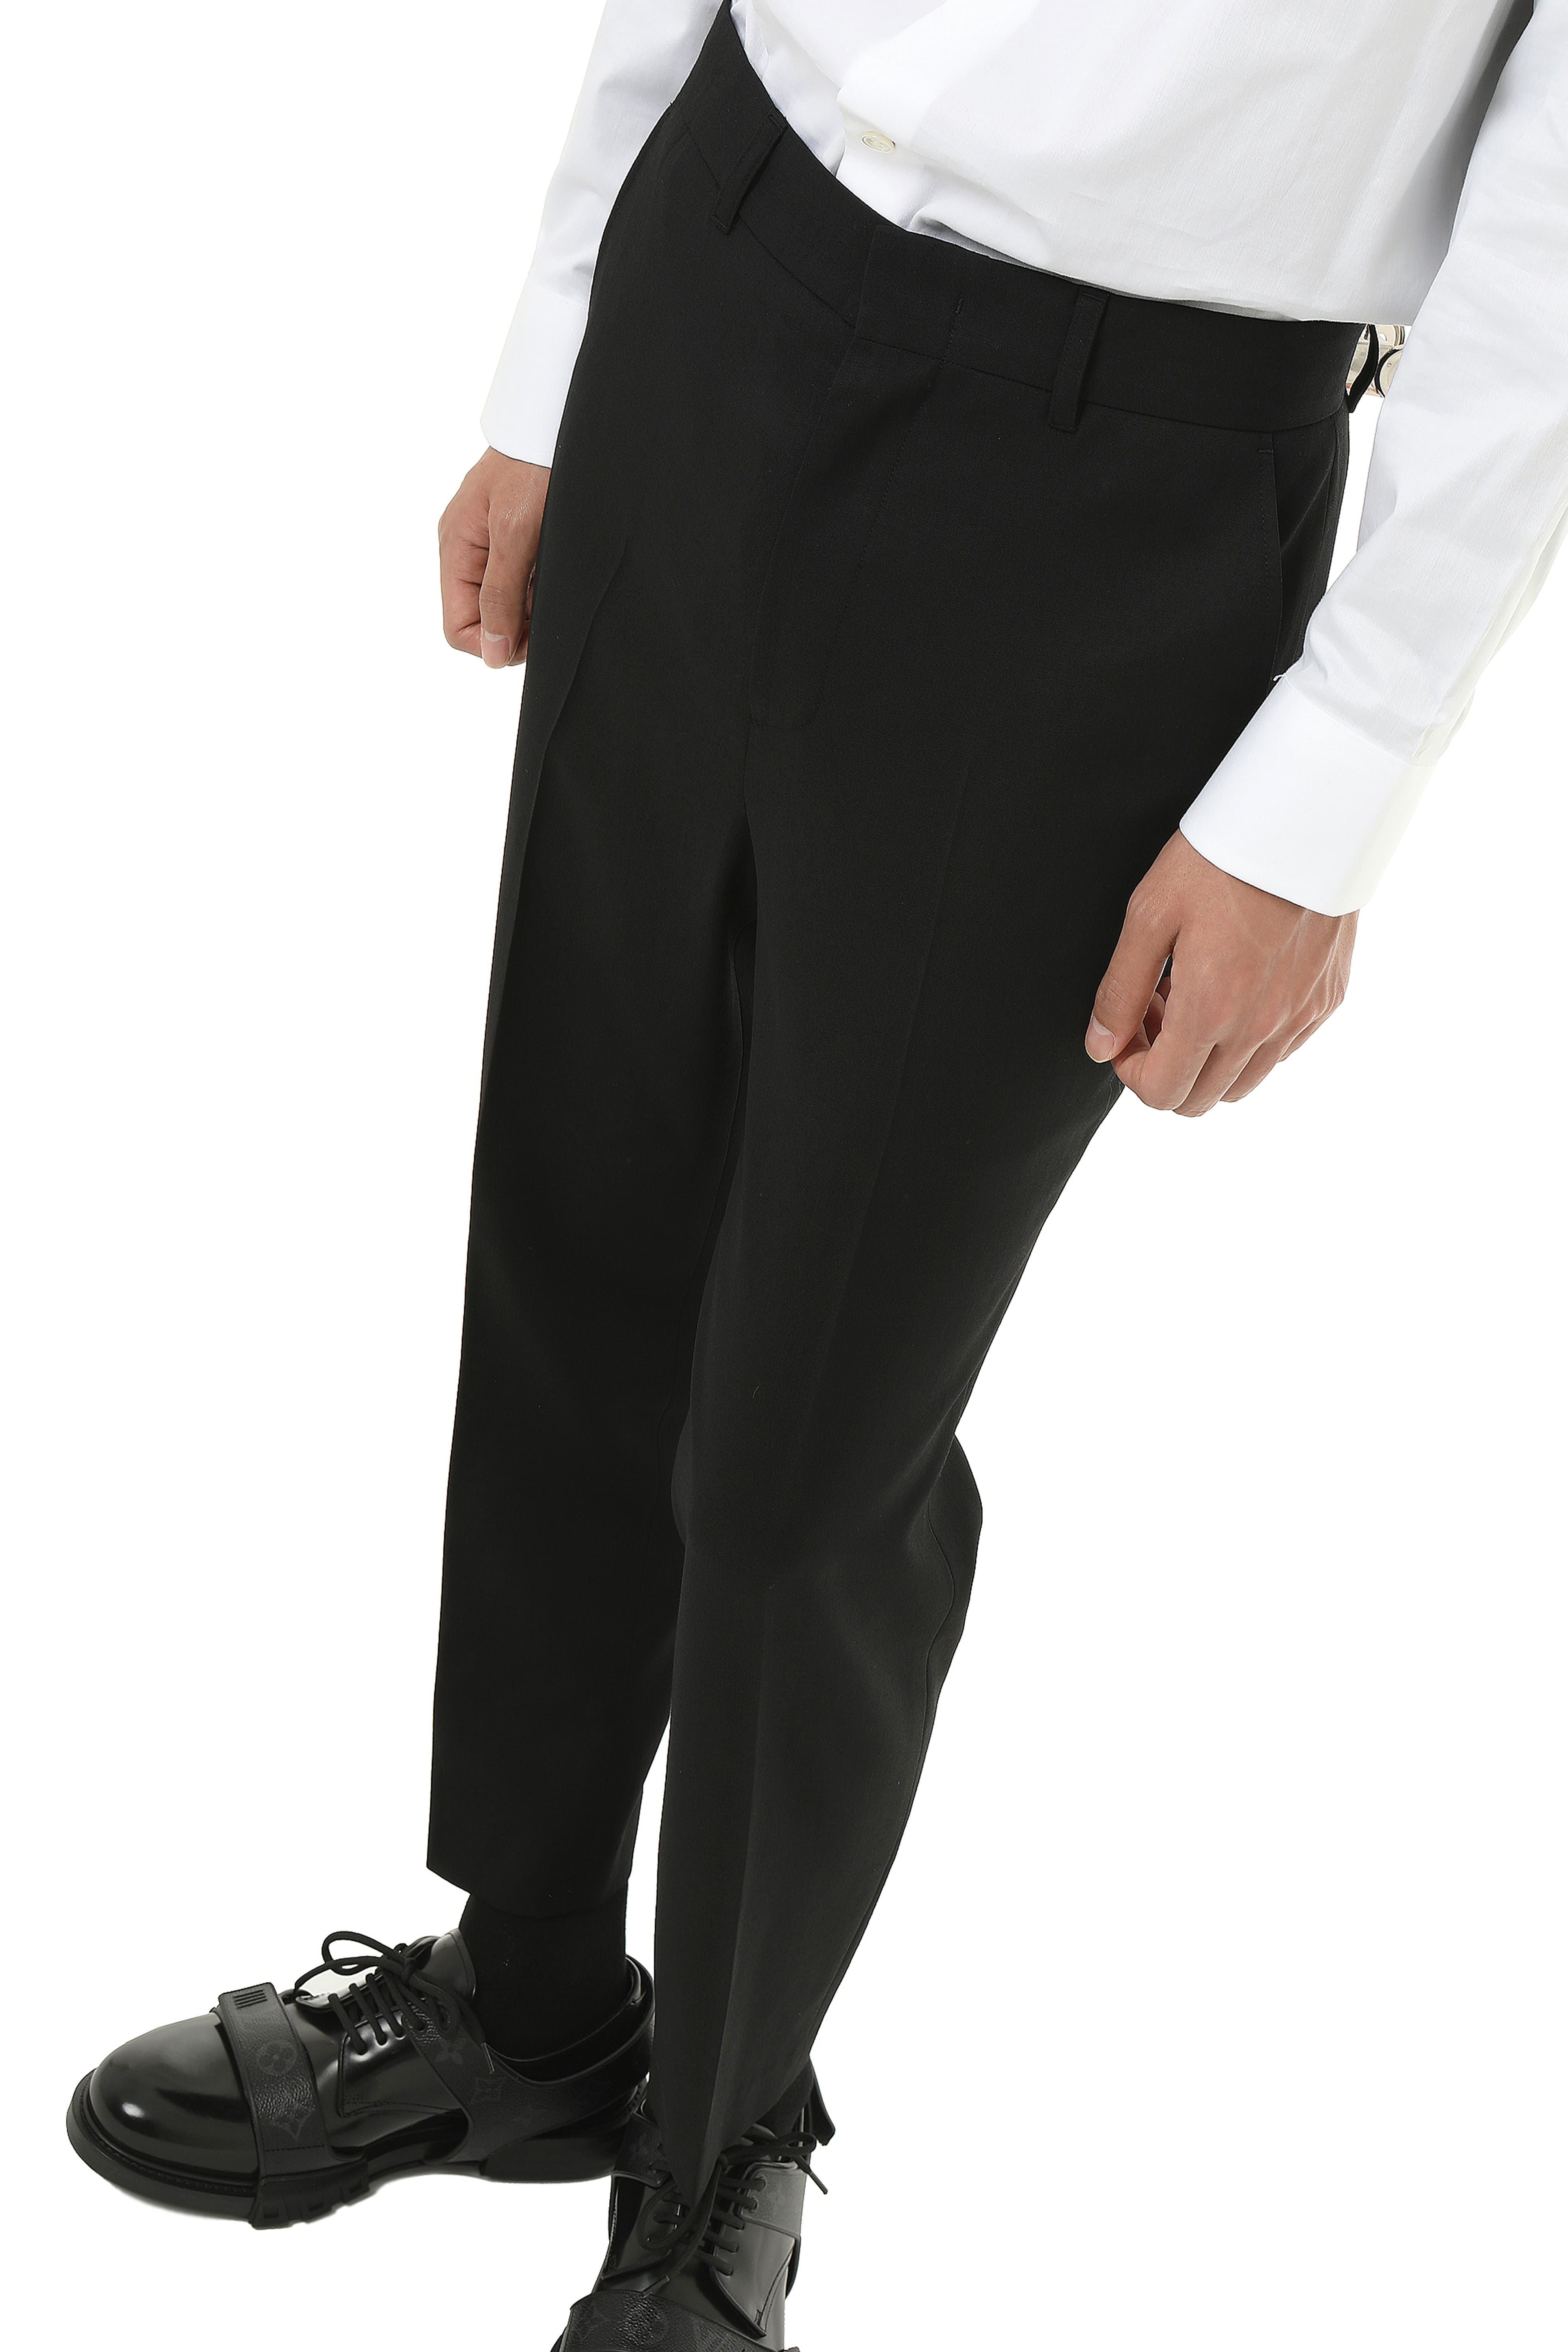 P001 / 4Seasons Slim Slacks